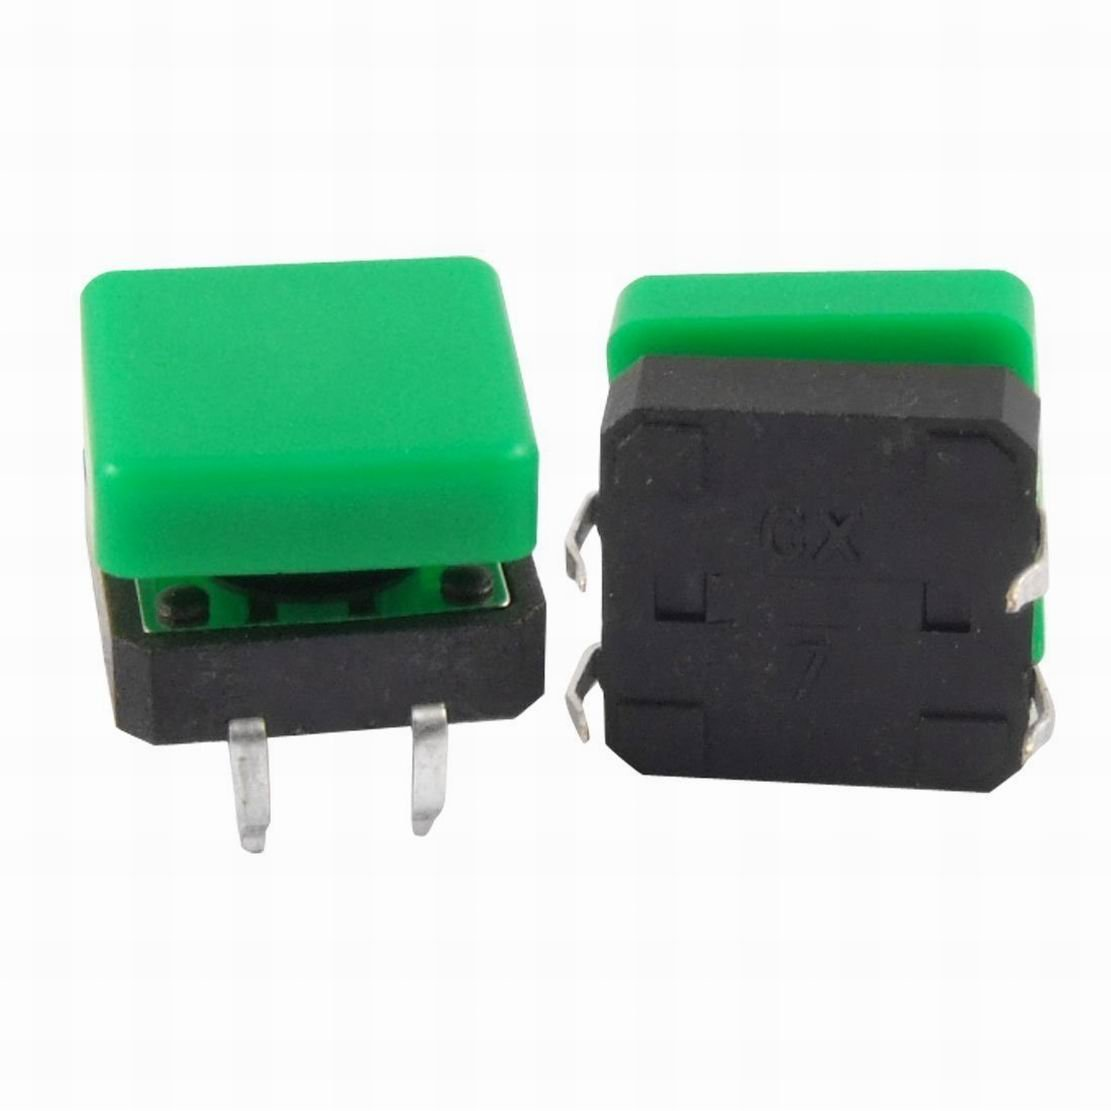 Ucland 2-Pin DIP Momentary Tactile Tact Push Button Switch 7 x 7 x 8mm